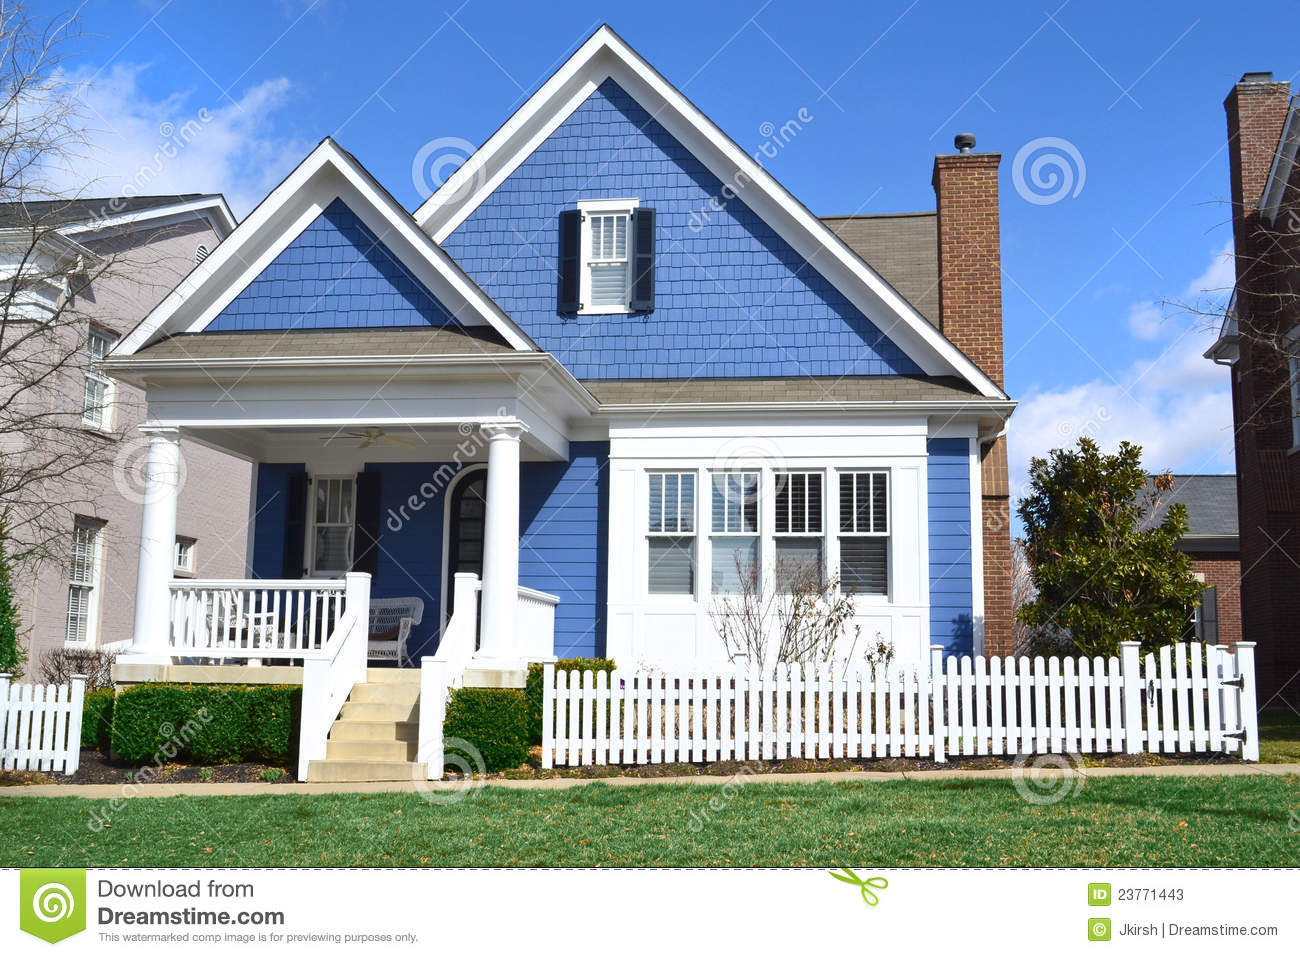 Blue cape cod style dream home stock photos image 23771443 for Cape style homes for sale